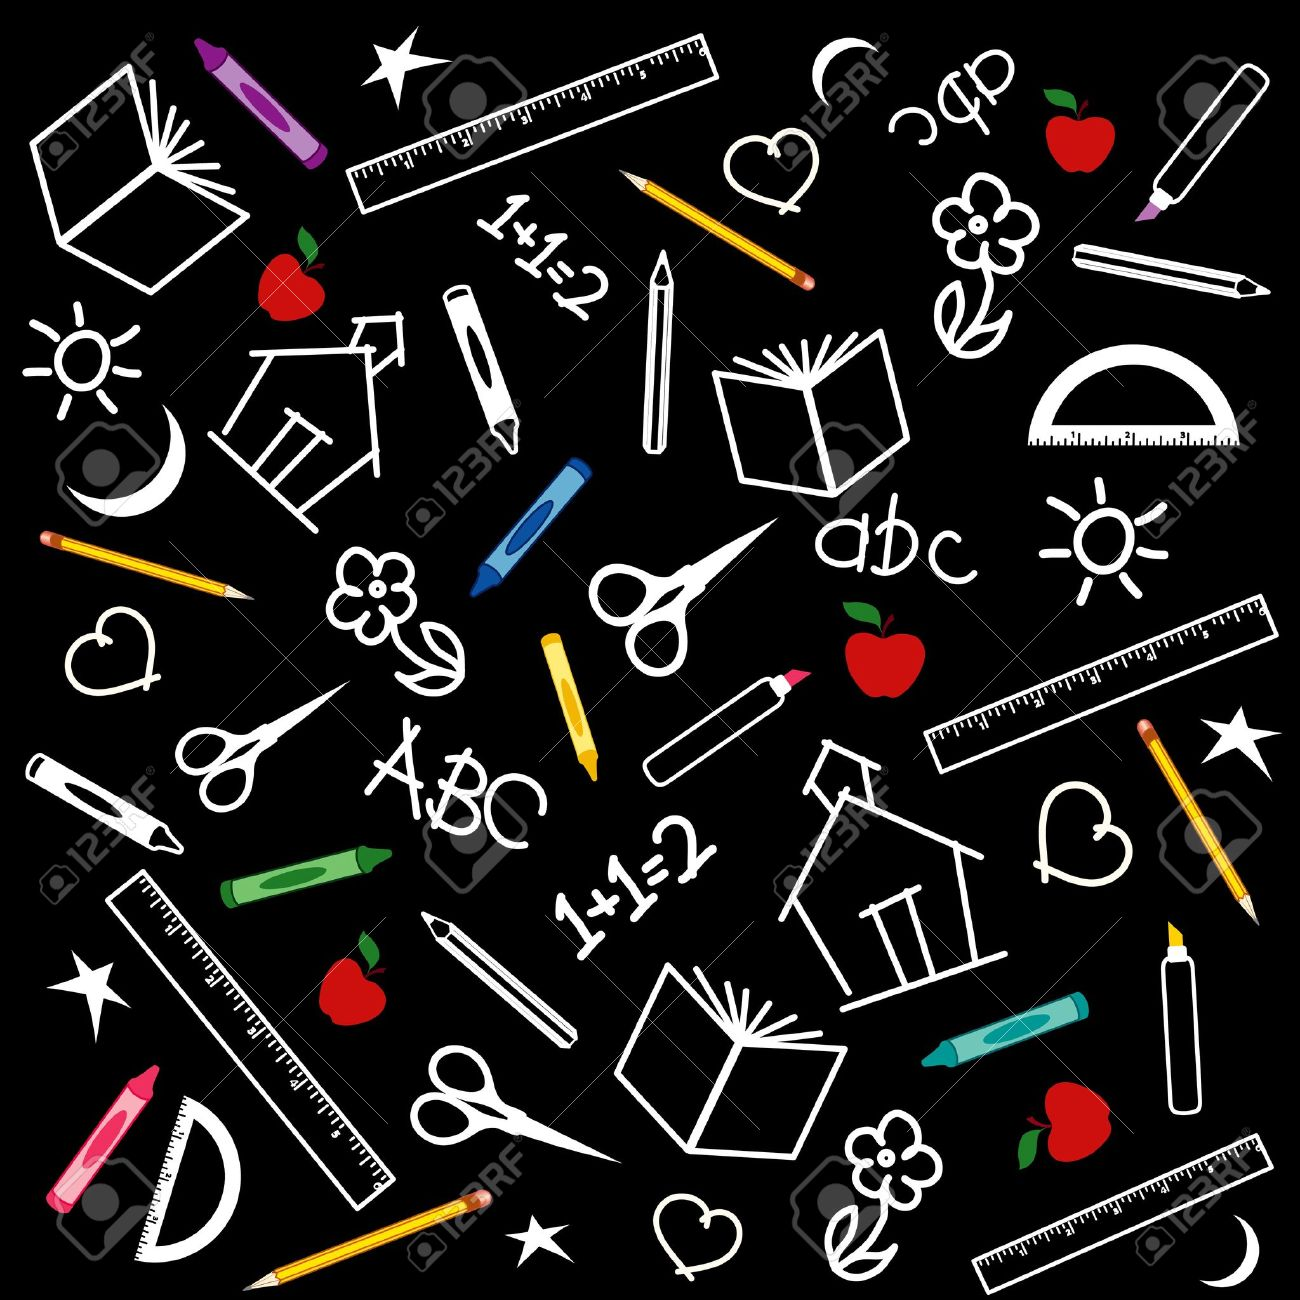 Back to school blackboard background with pens, pencils, crayons, scissors, rulers, apples, books, math, ABCs, doodles, schoolhouses. Stock Vector - 10277594